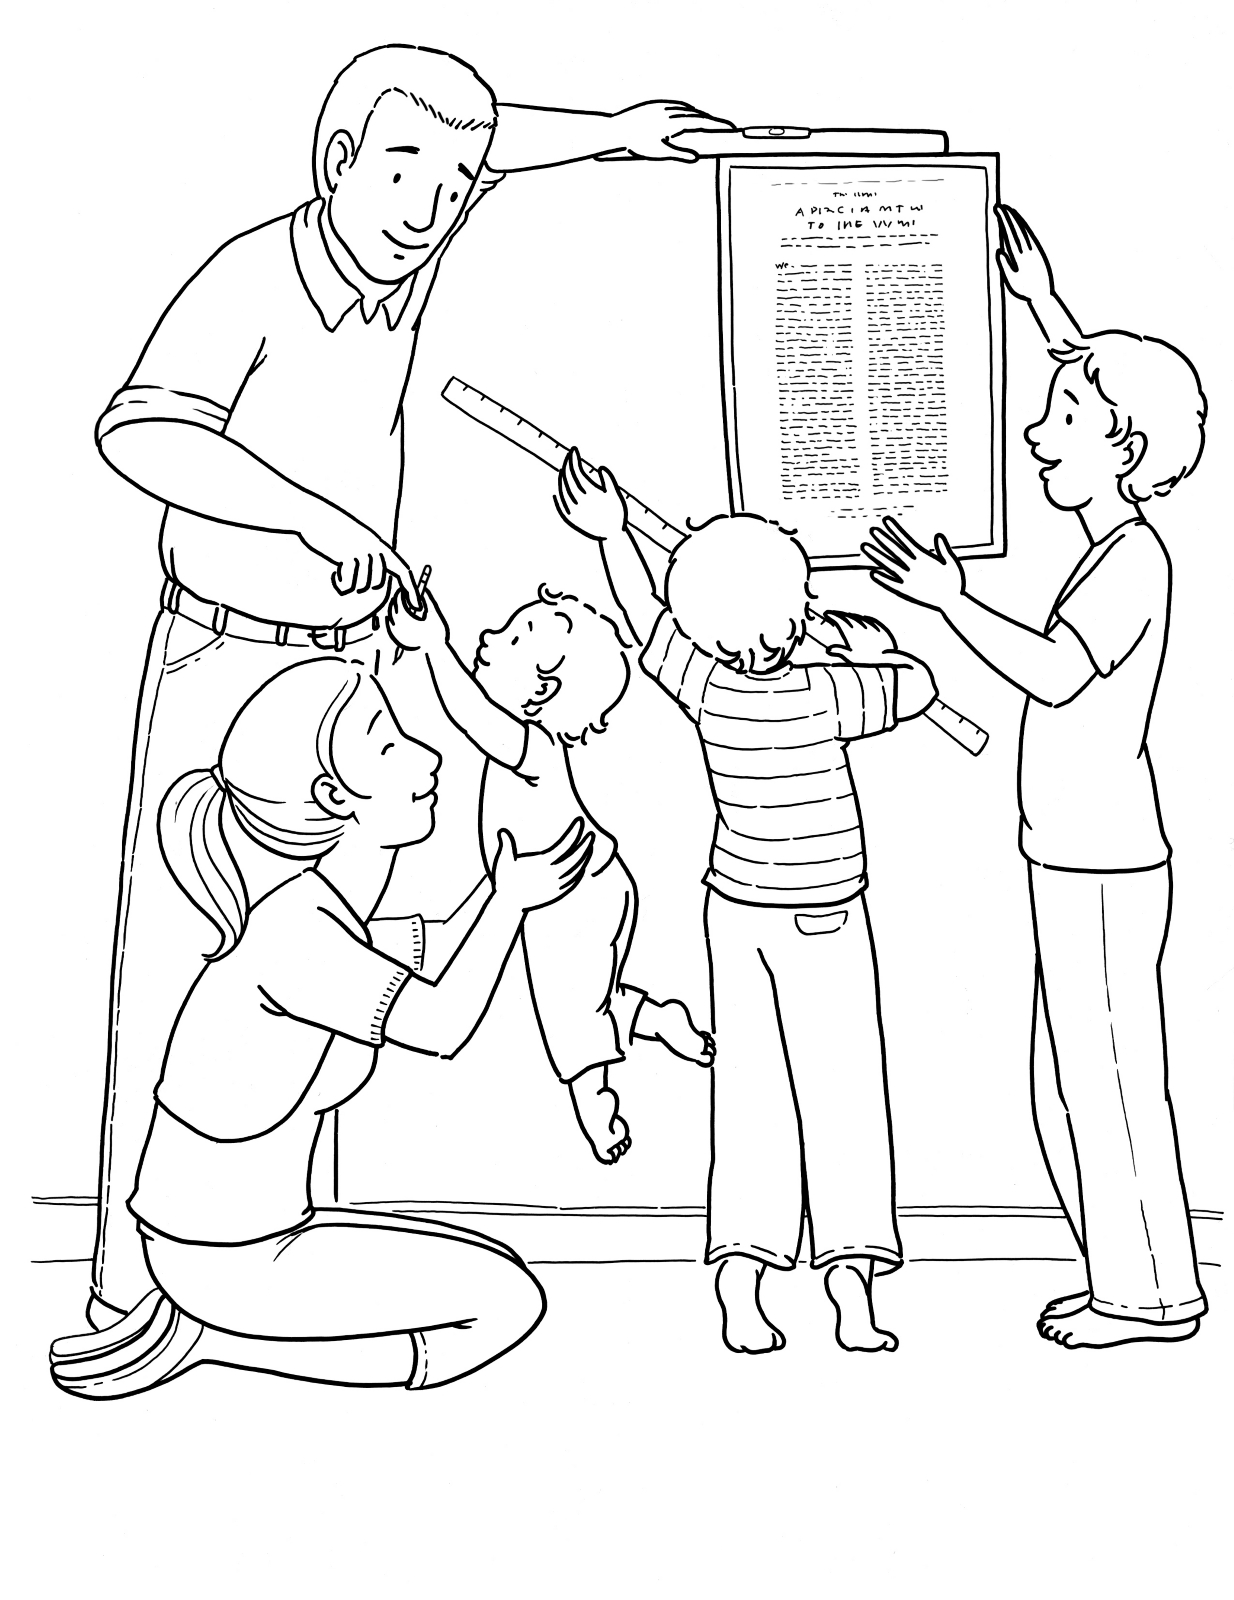 students working together coloring pages - photo#47